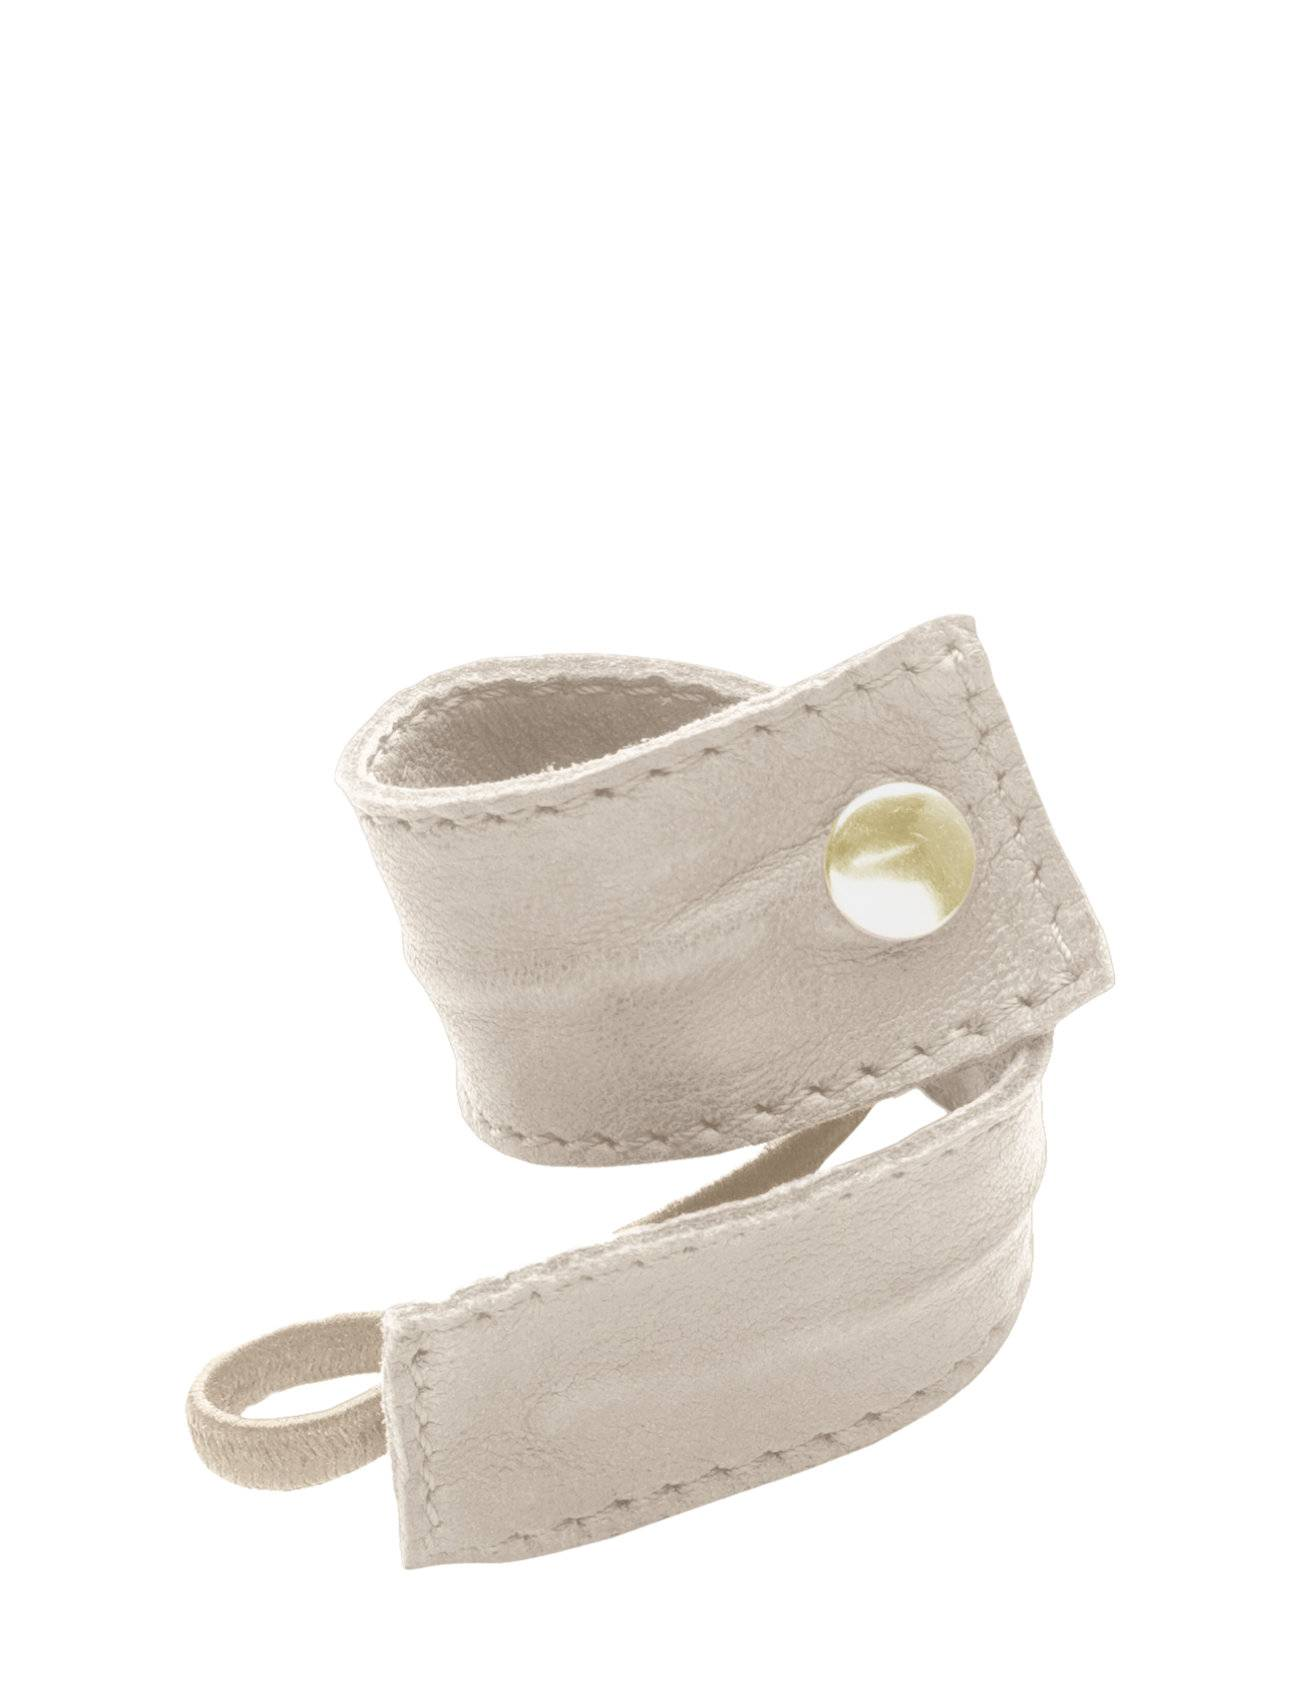 Image of Corinne Leather Band Short Bendable Beauty WOMEN Hair Accessories Hair Accessories Beige Corinne